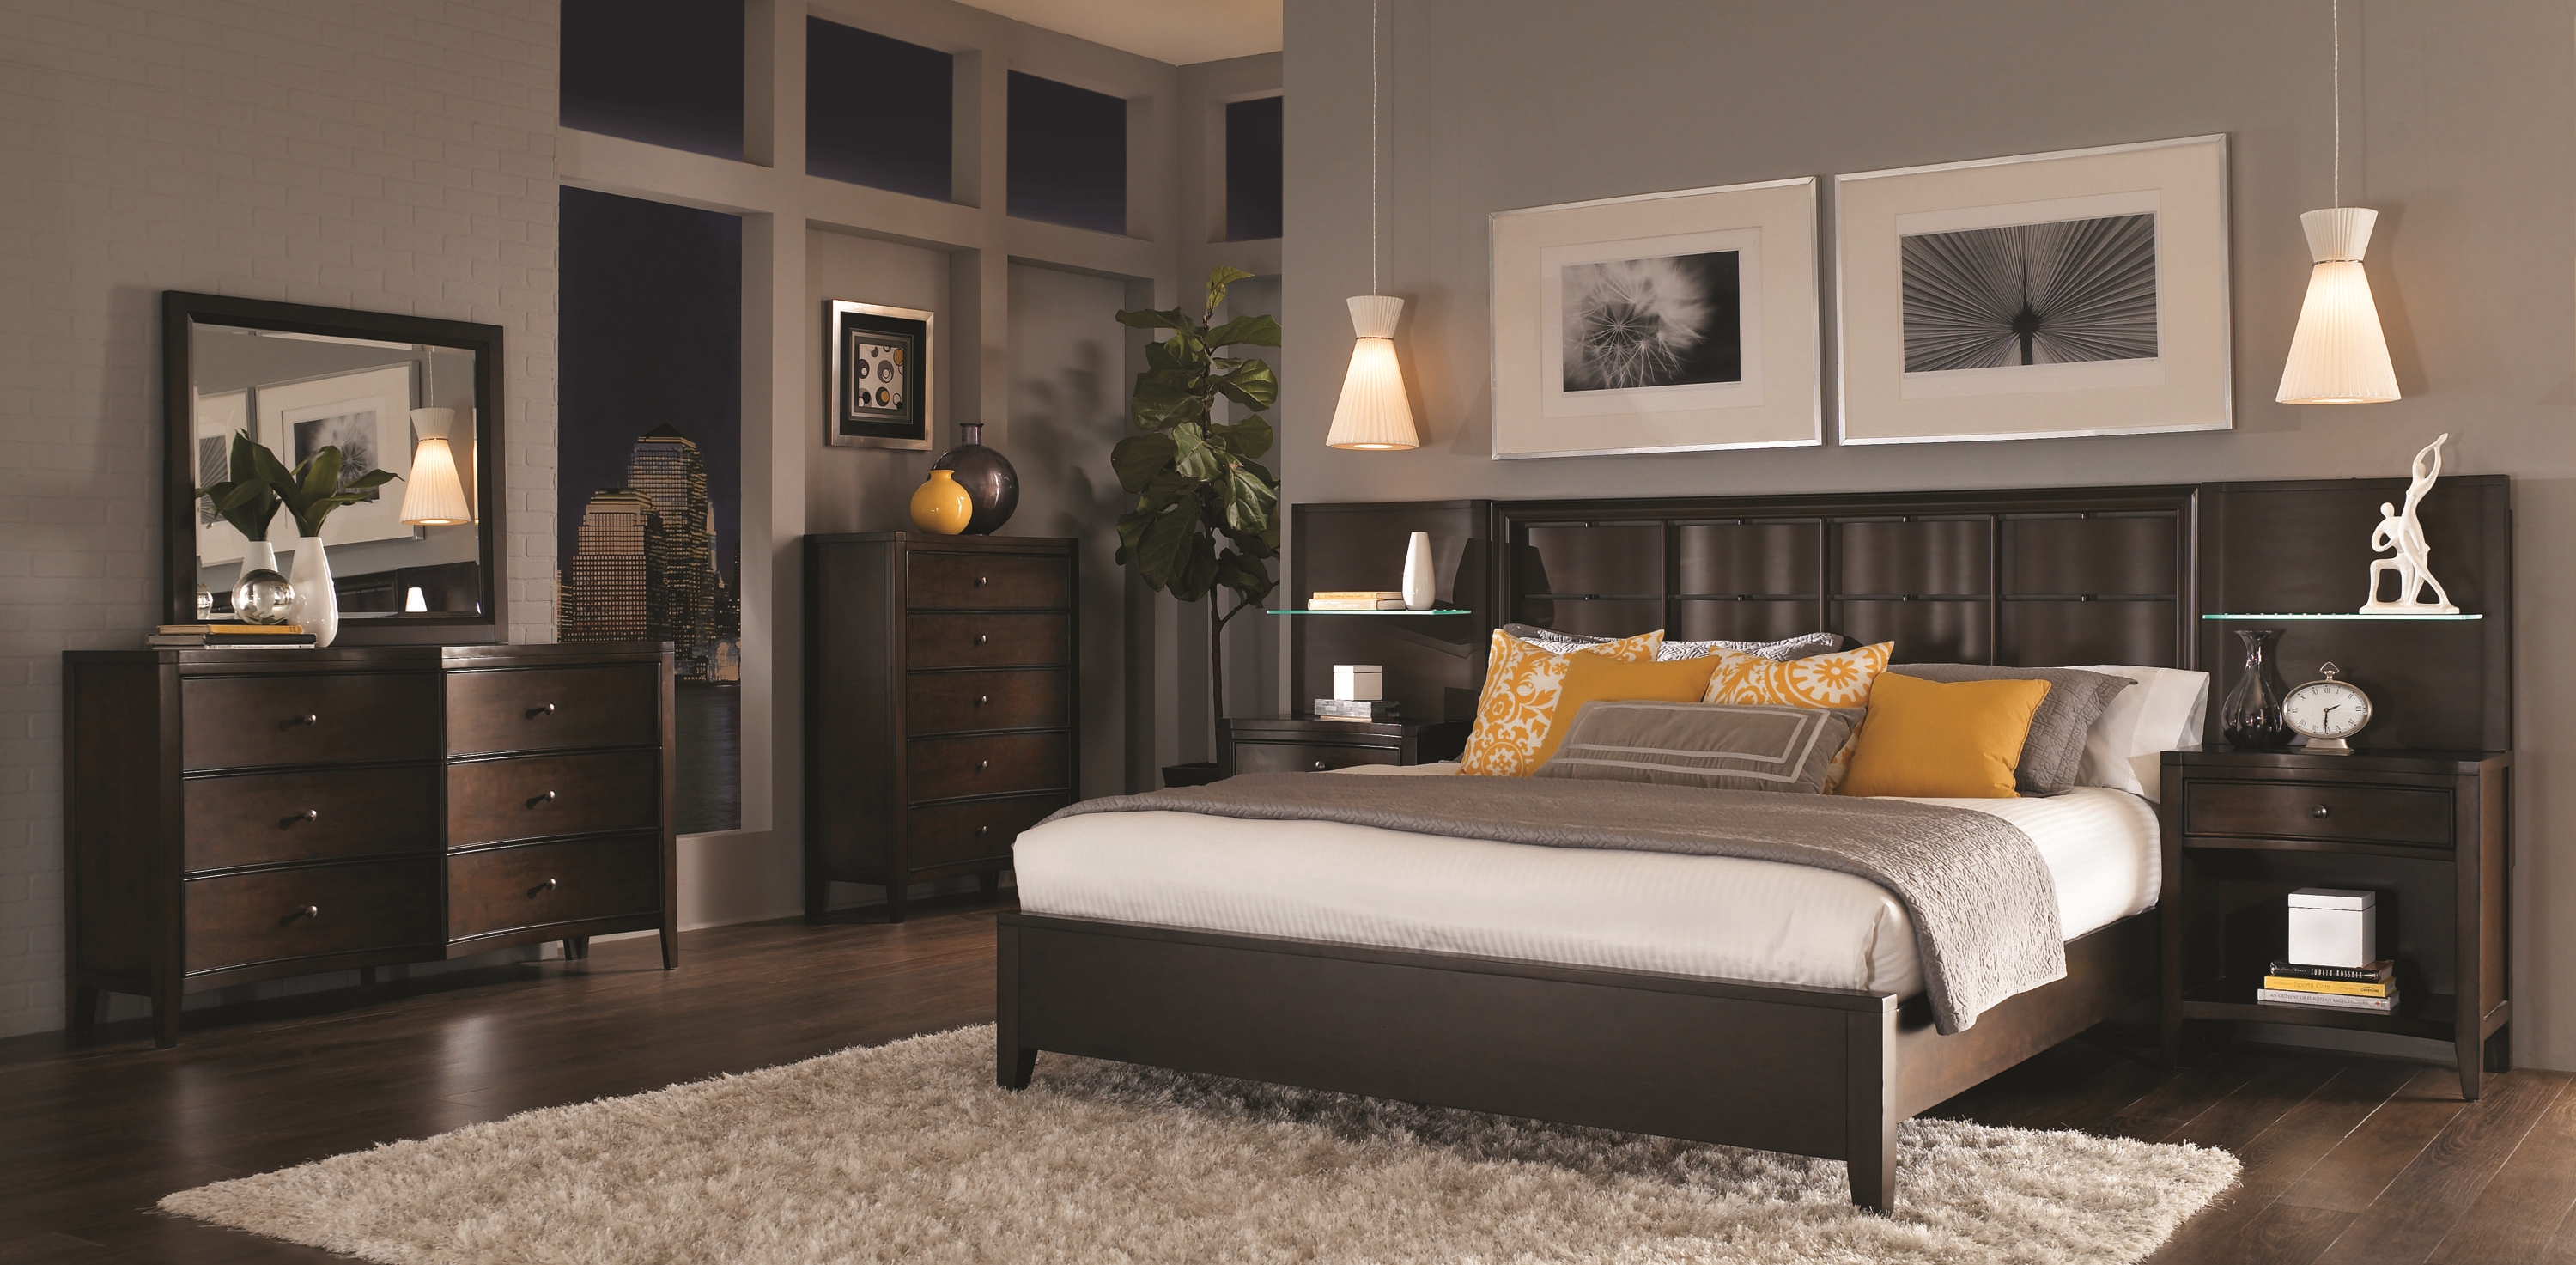 photo of a comfortable bedroom